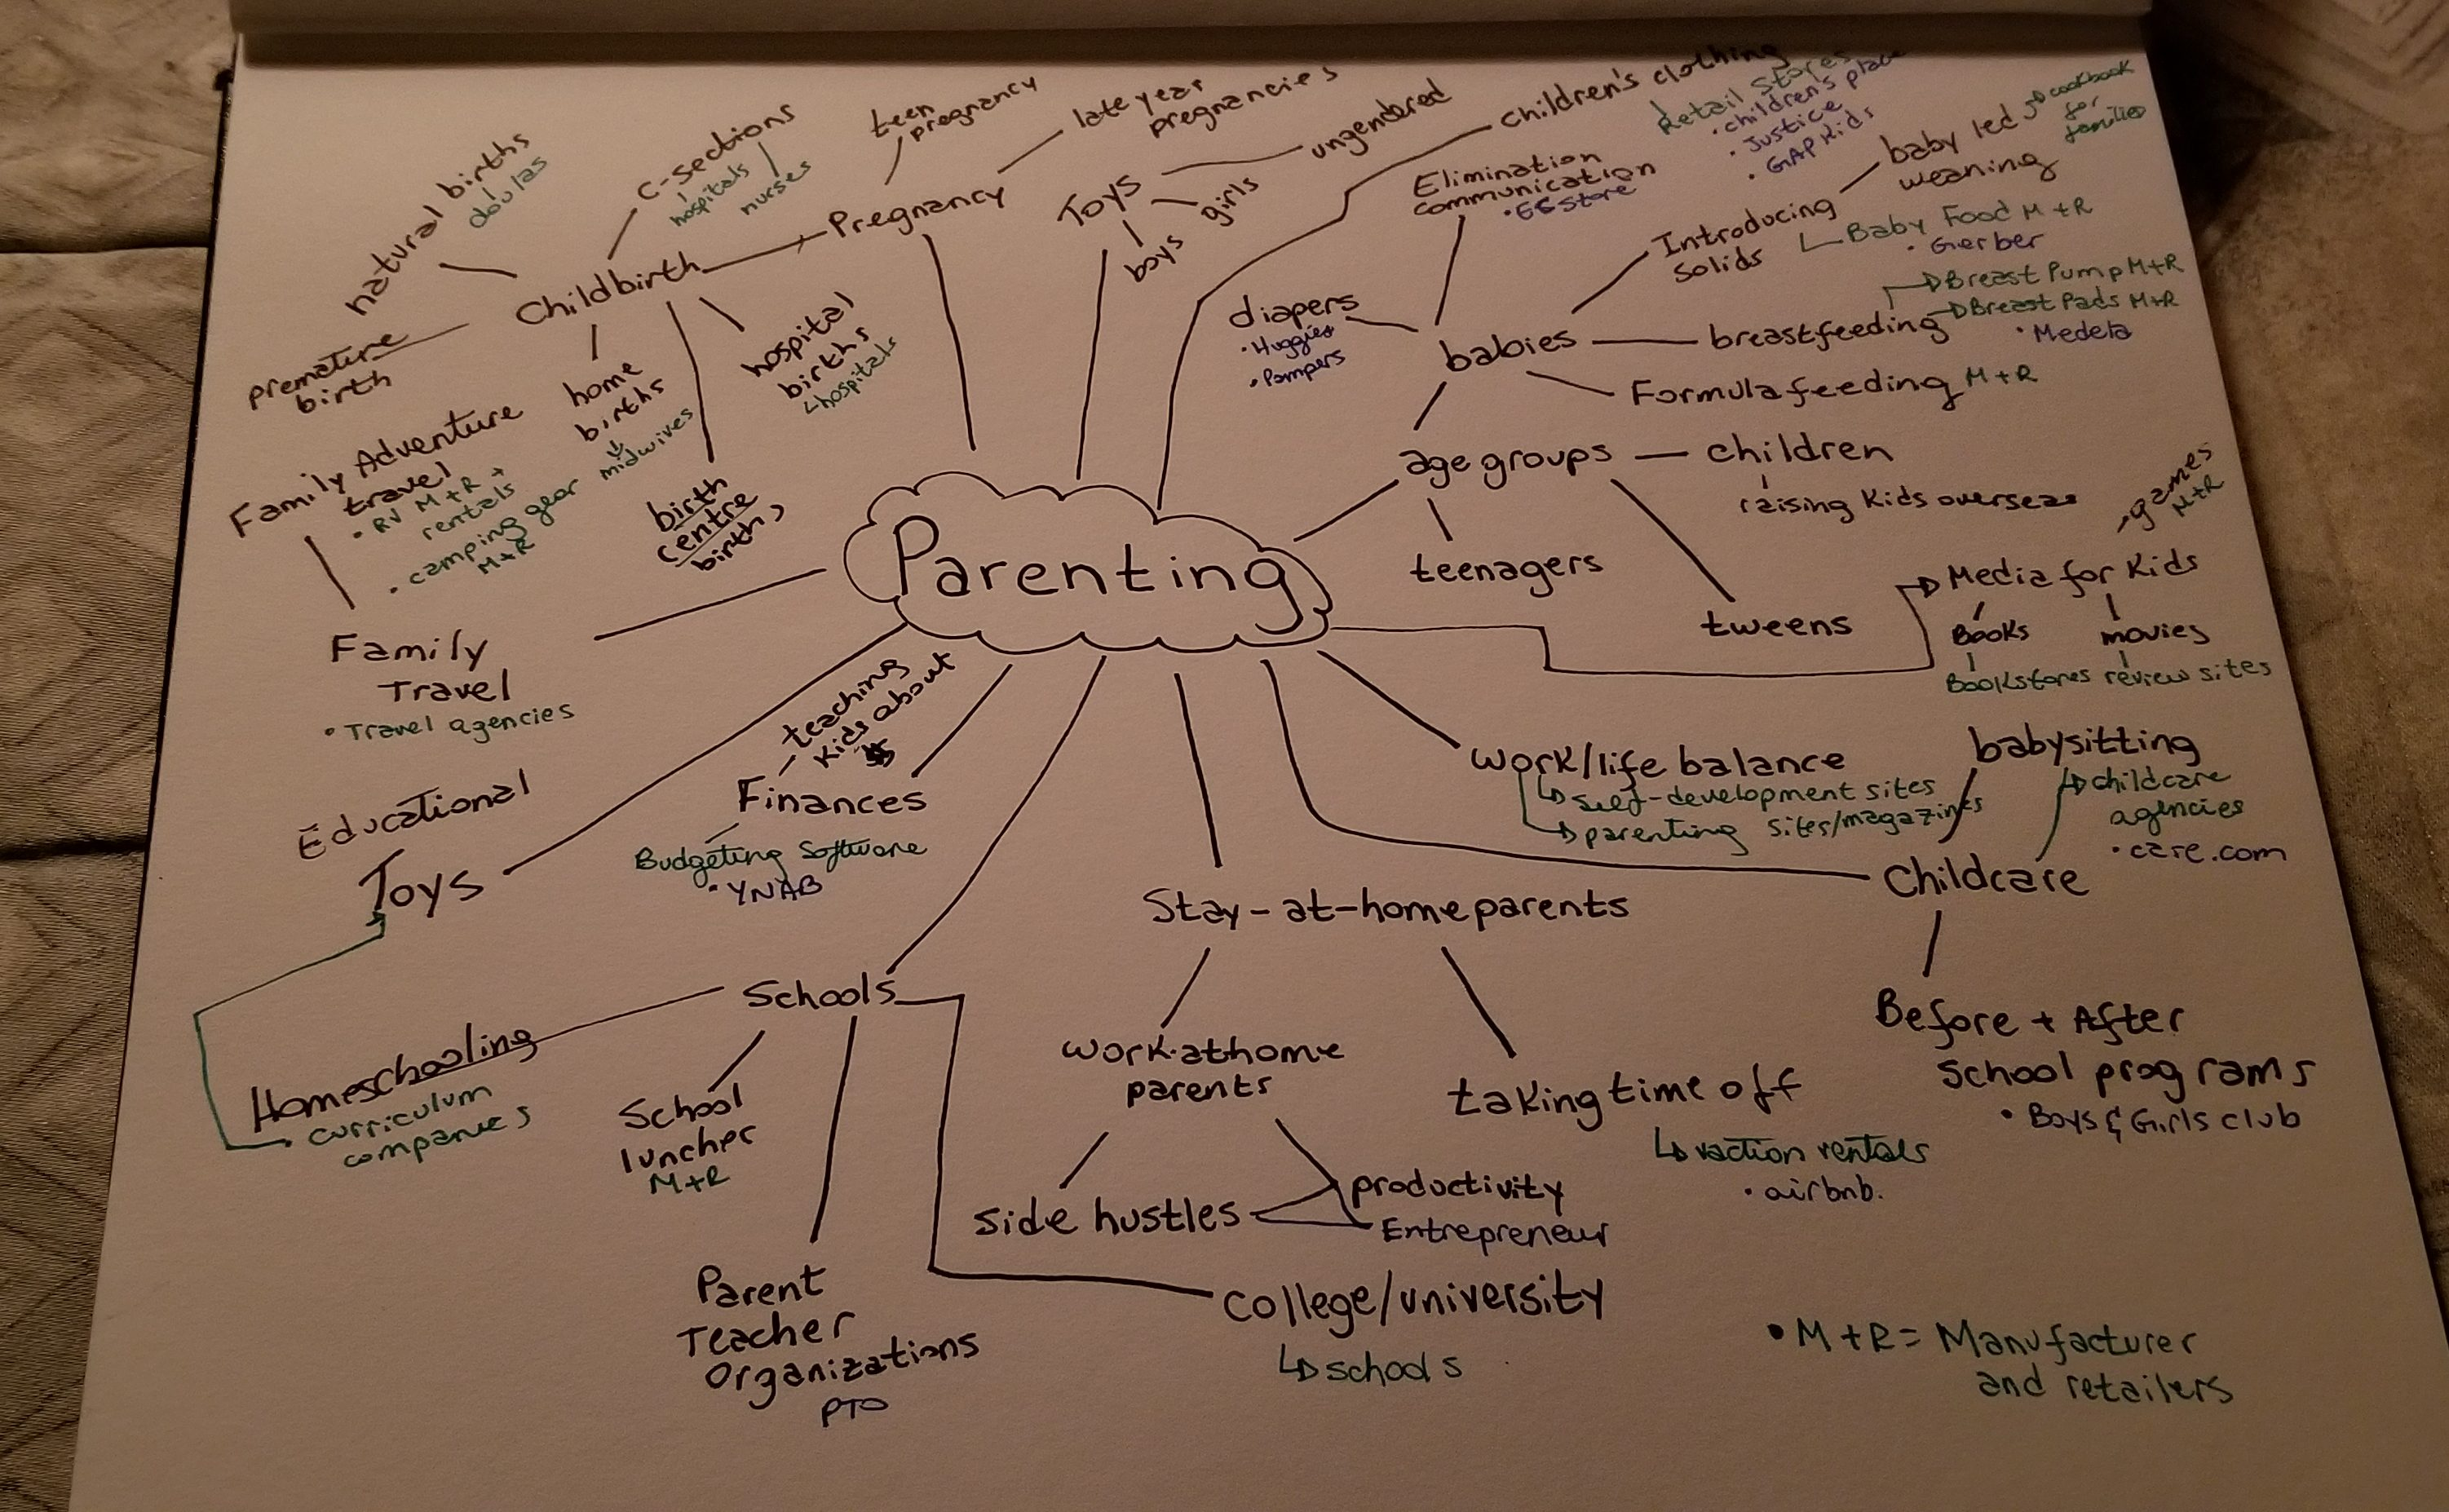 Parenting mind map: a tool for thinking about what companies to pitch and what topics to think about in the parenting niche.